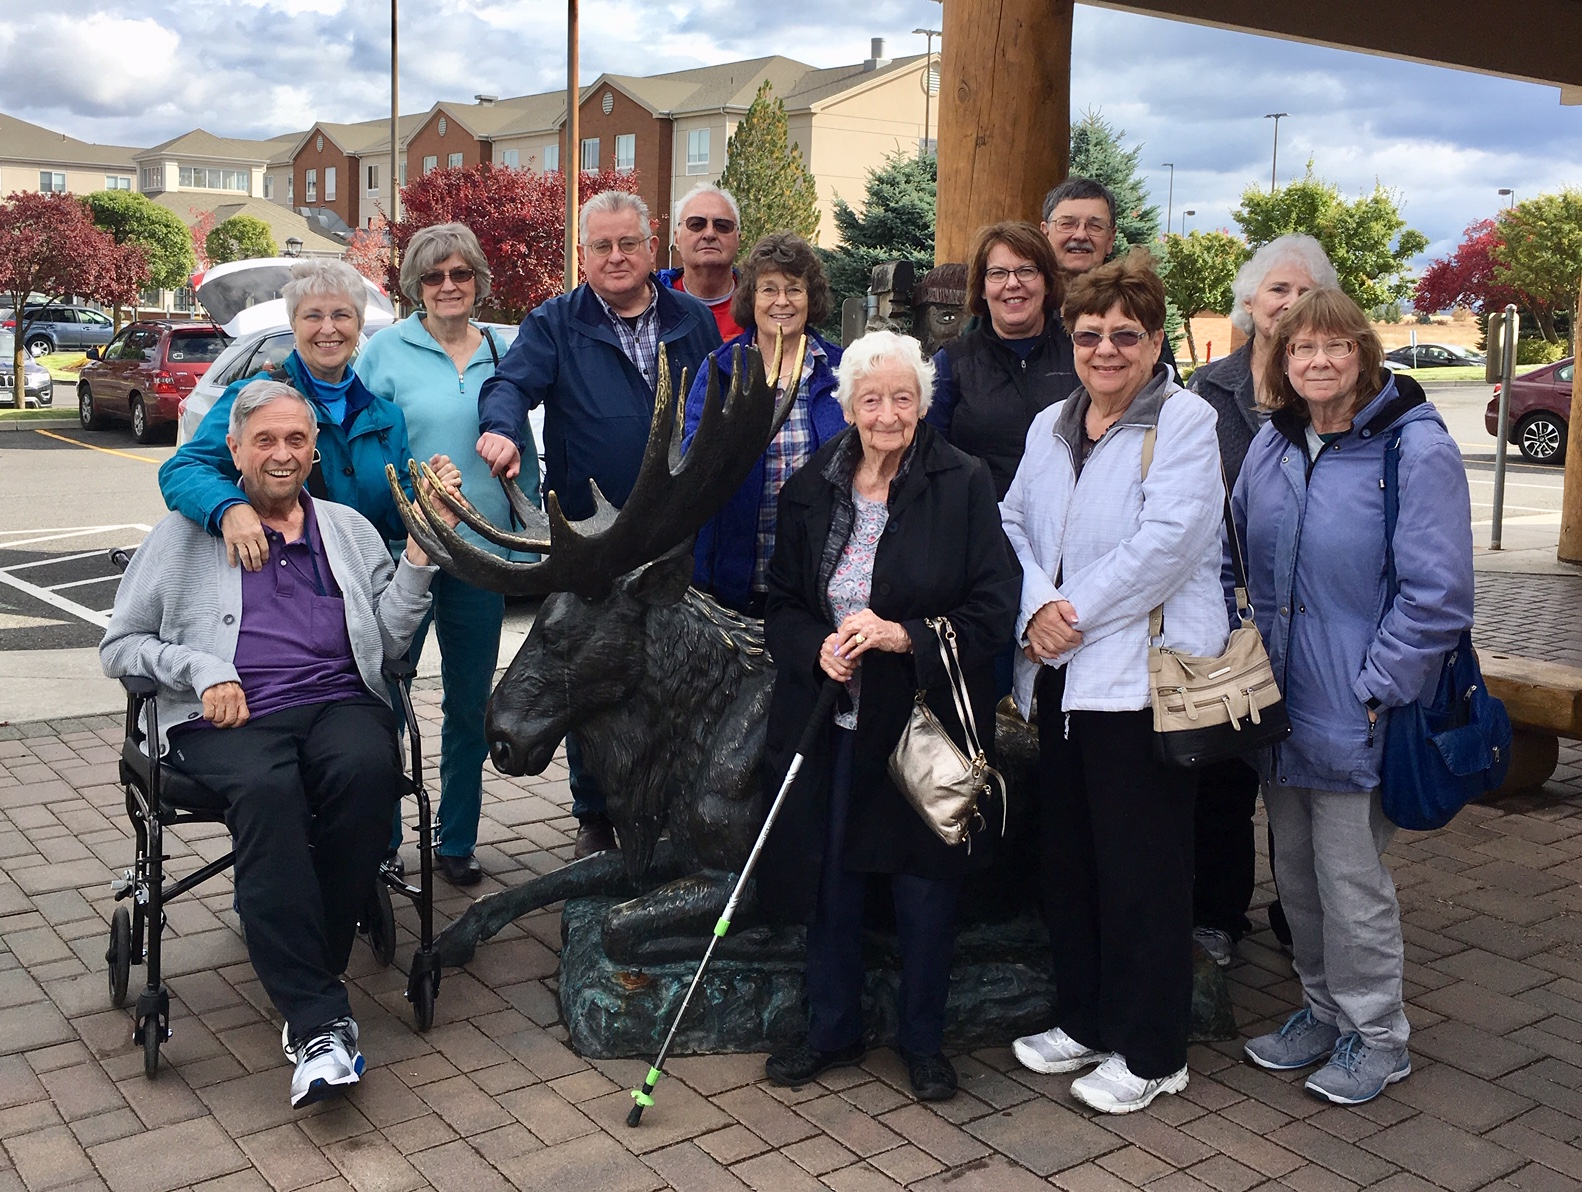 Whitworth Encore - Encore is a group of men and women, age 55+, who participate in activities that foster spiritual growth and health as well as fellowship events.